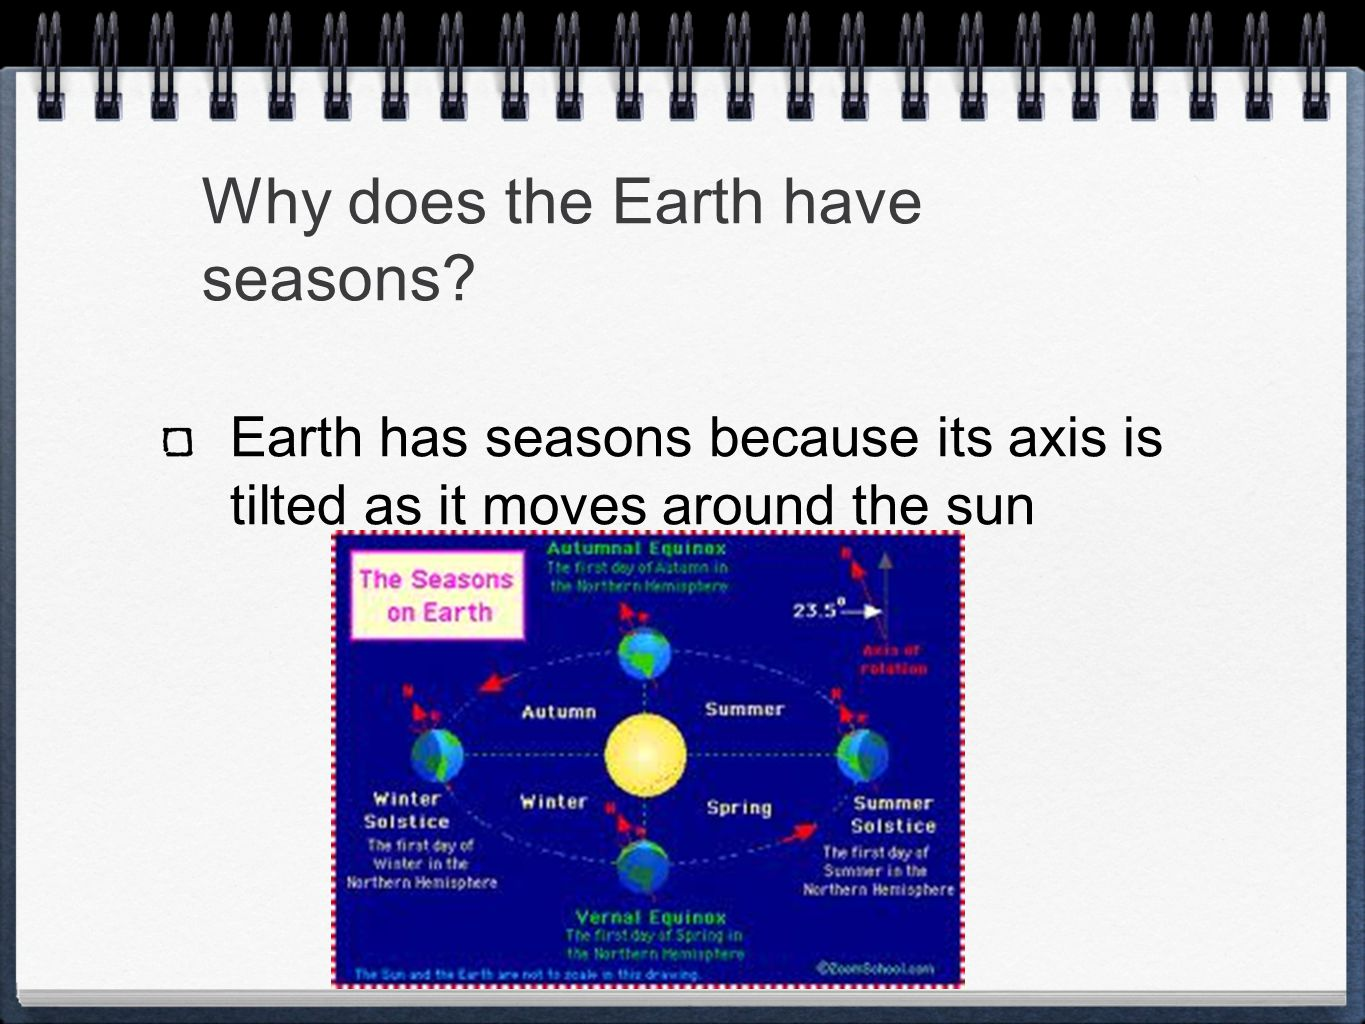 Why does the Earth have seasons? Earth has seasons because its axis is tilted as it moves around the sun